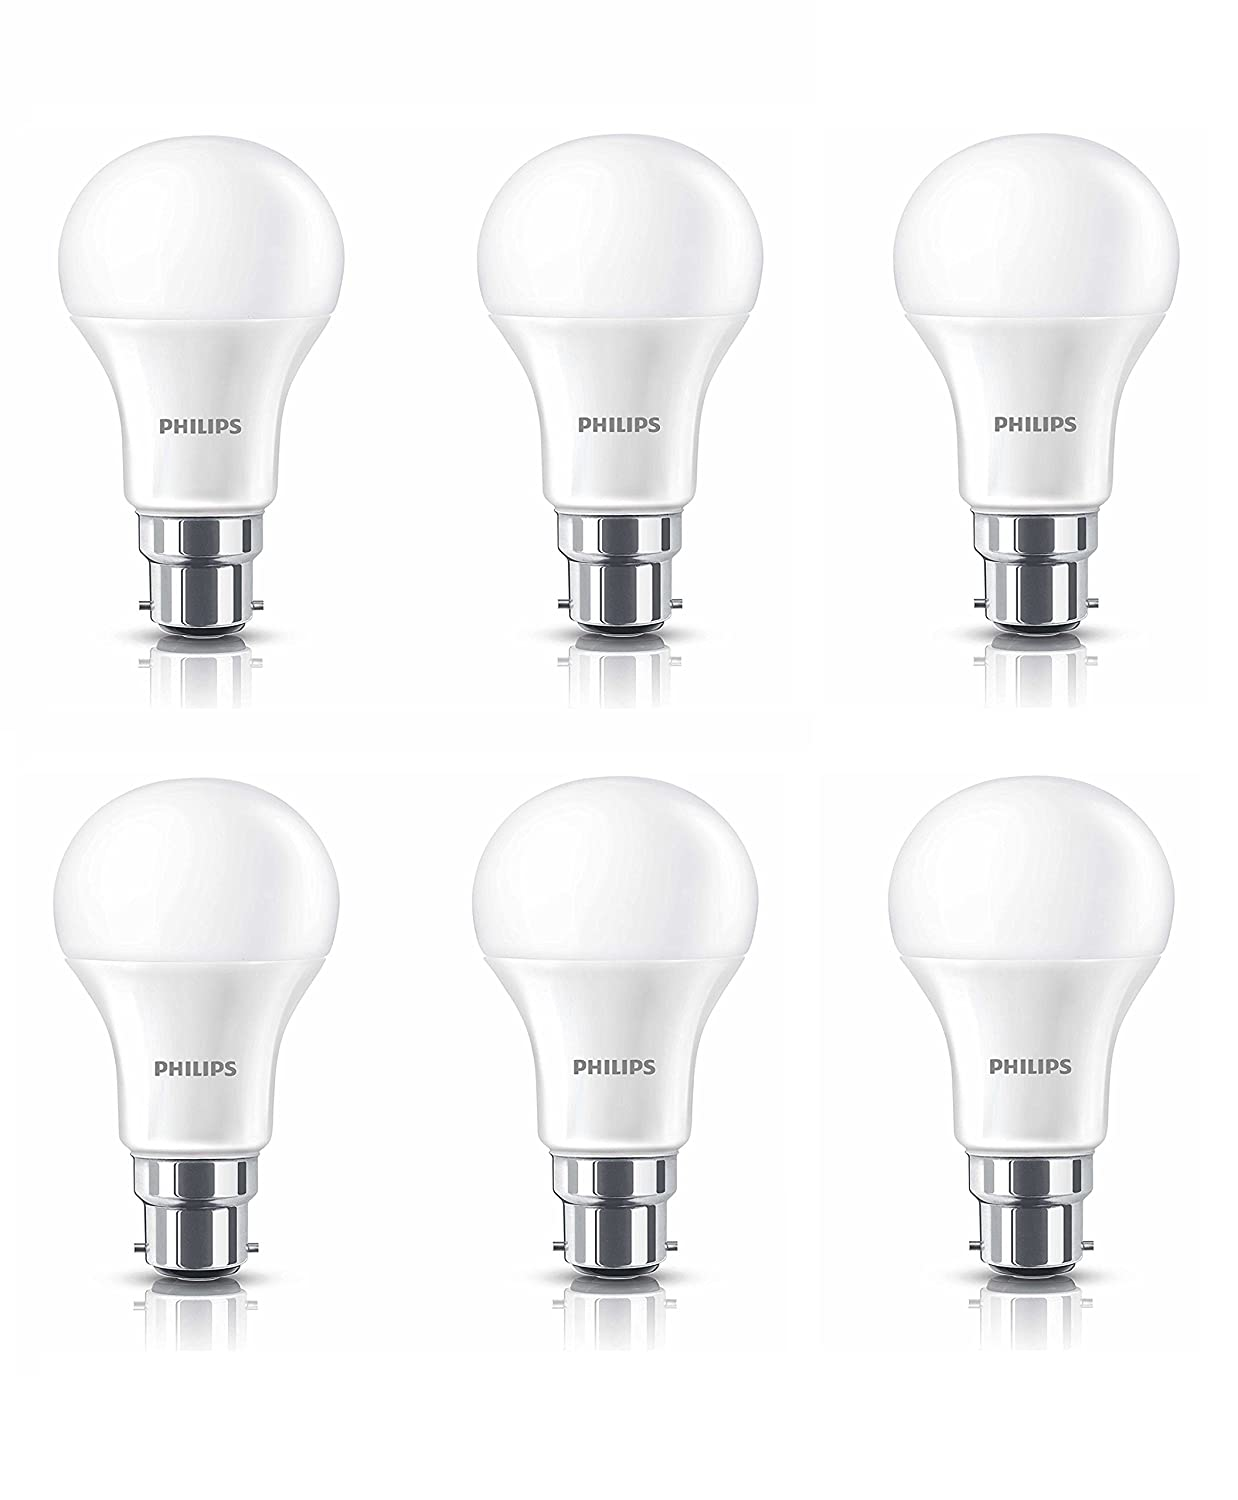 Buy philips base b22 12 watt led bulb golden yellow pack of 2 buy philips base b22 12 watt led bulb golden yellow pack of 2 online at low prices in india amazon parisarafo Gallery